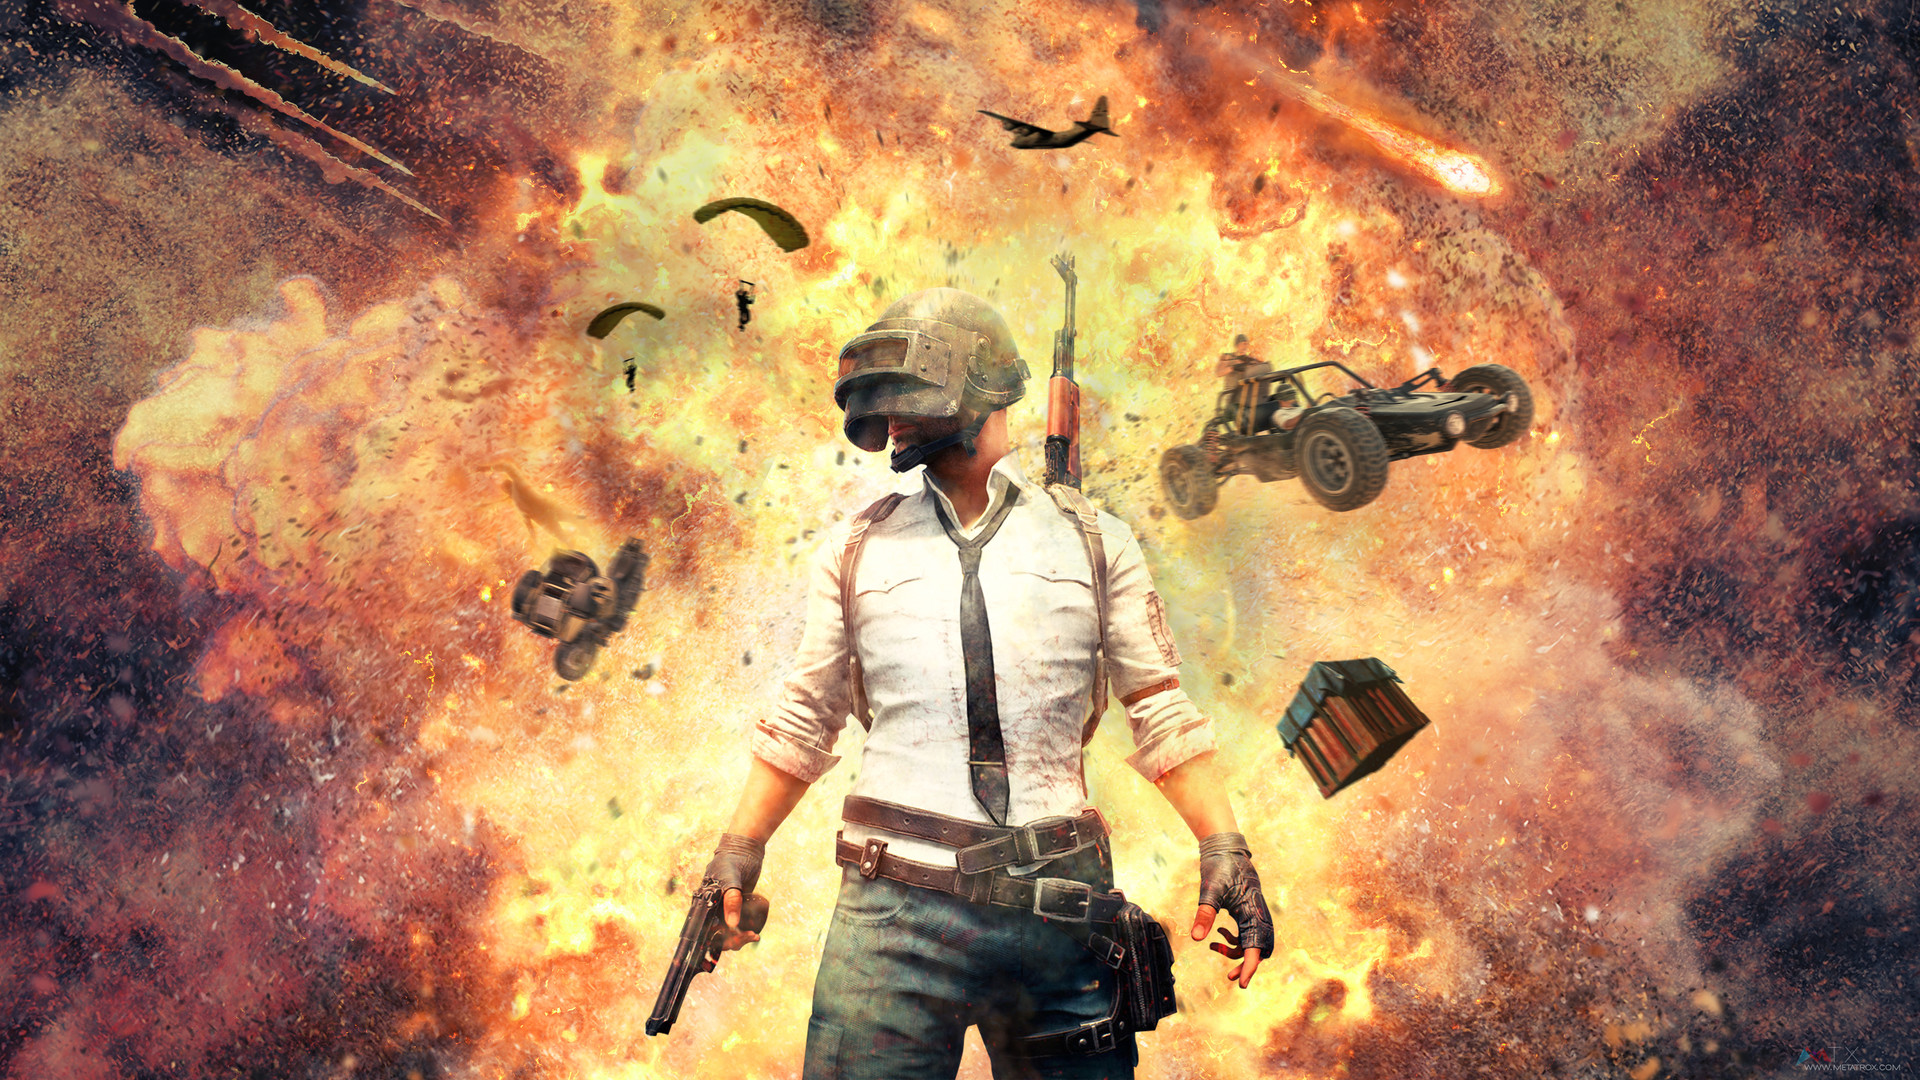 Pubg Wallpaper High Quality: PUBG Wallpapers